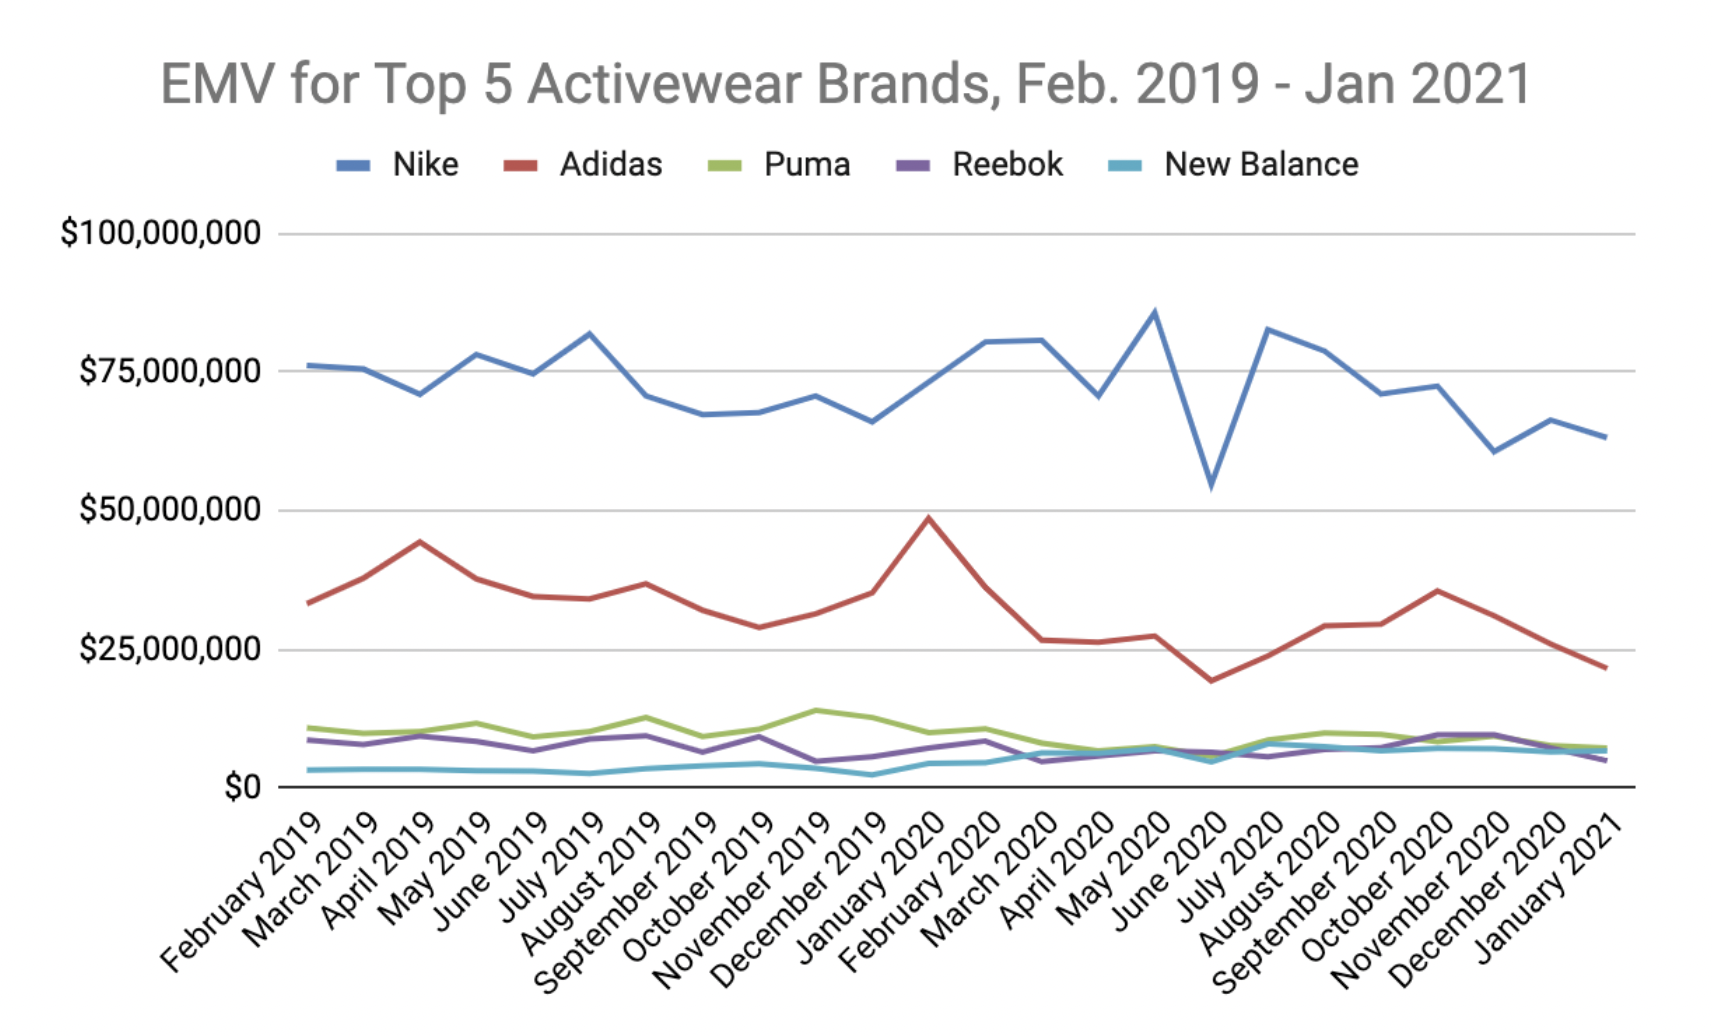 A line graph displaying monthly EMV for the 5 top activewear brands from February 2020 to January 2021.